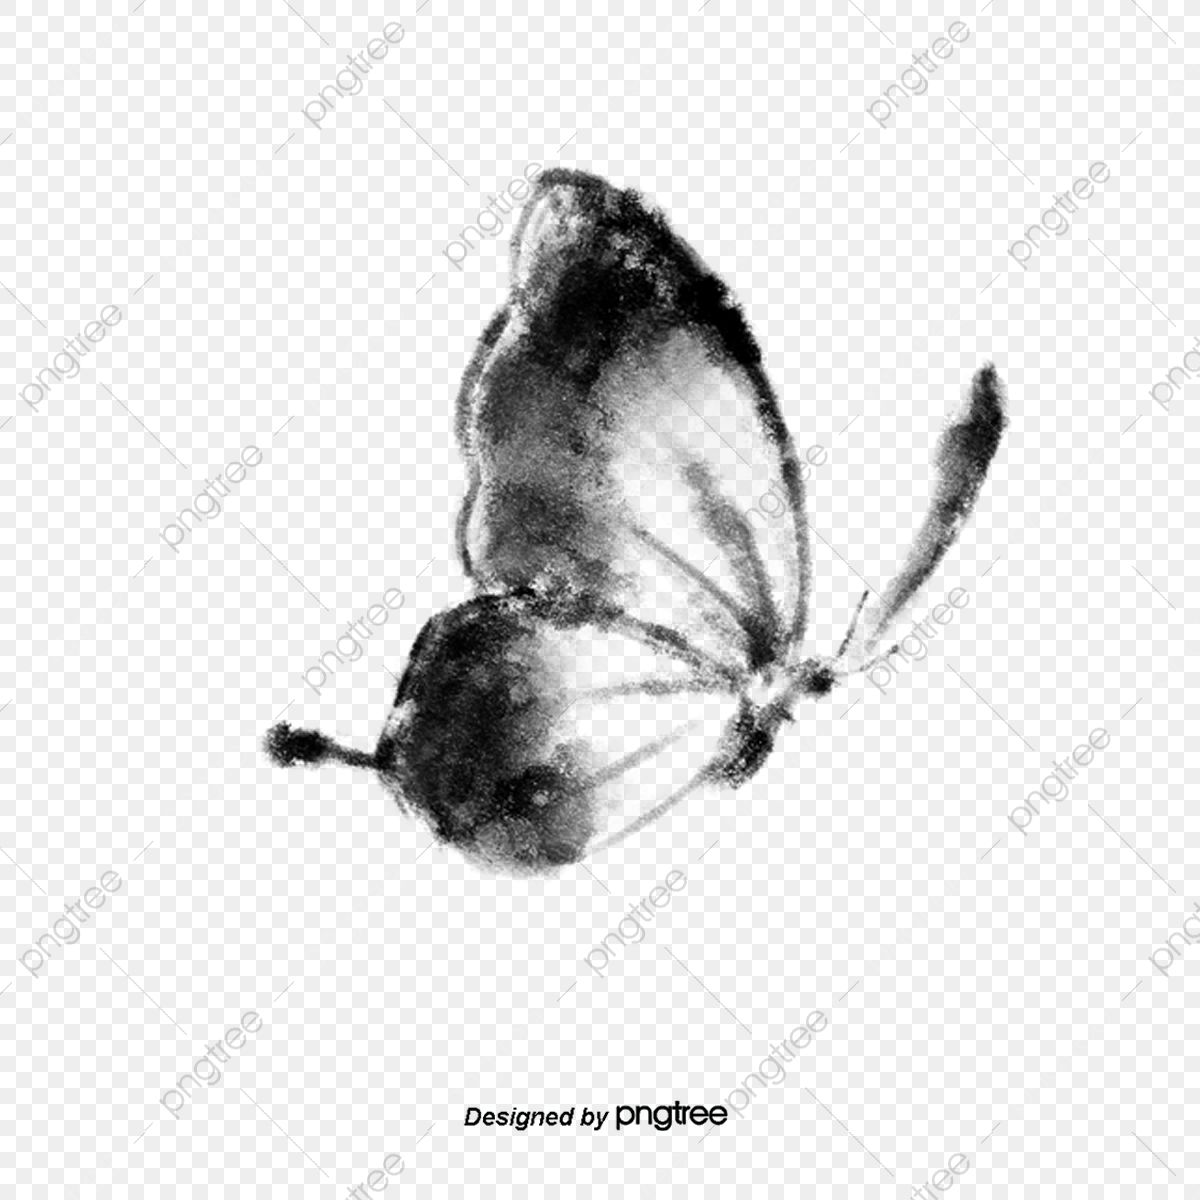 Side Flying Black And White Butterfly Elements In Ink Butterfly Clipart Flying Clipart Wings Png Transparent Clipart Image And Psd File For Free Download Butterfly Clip Art White Butterfly Clip Art